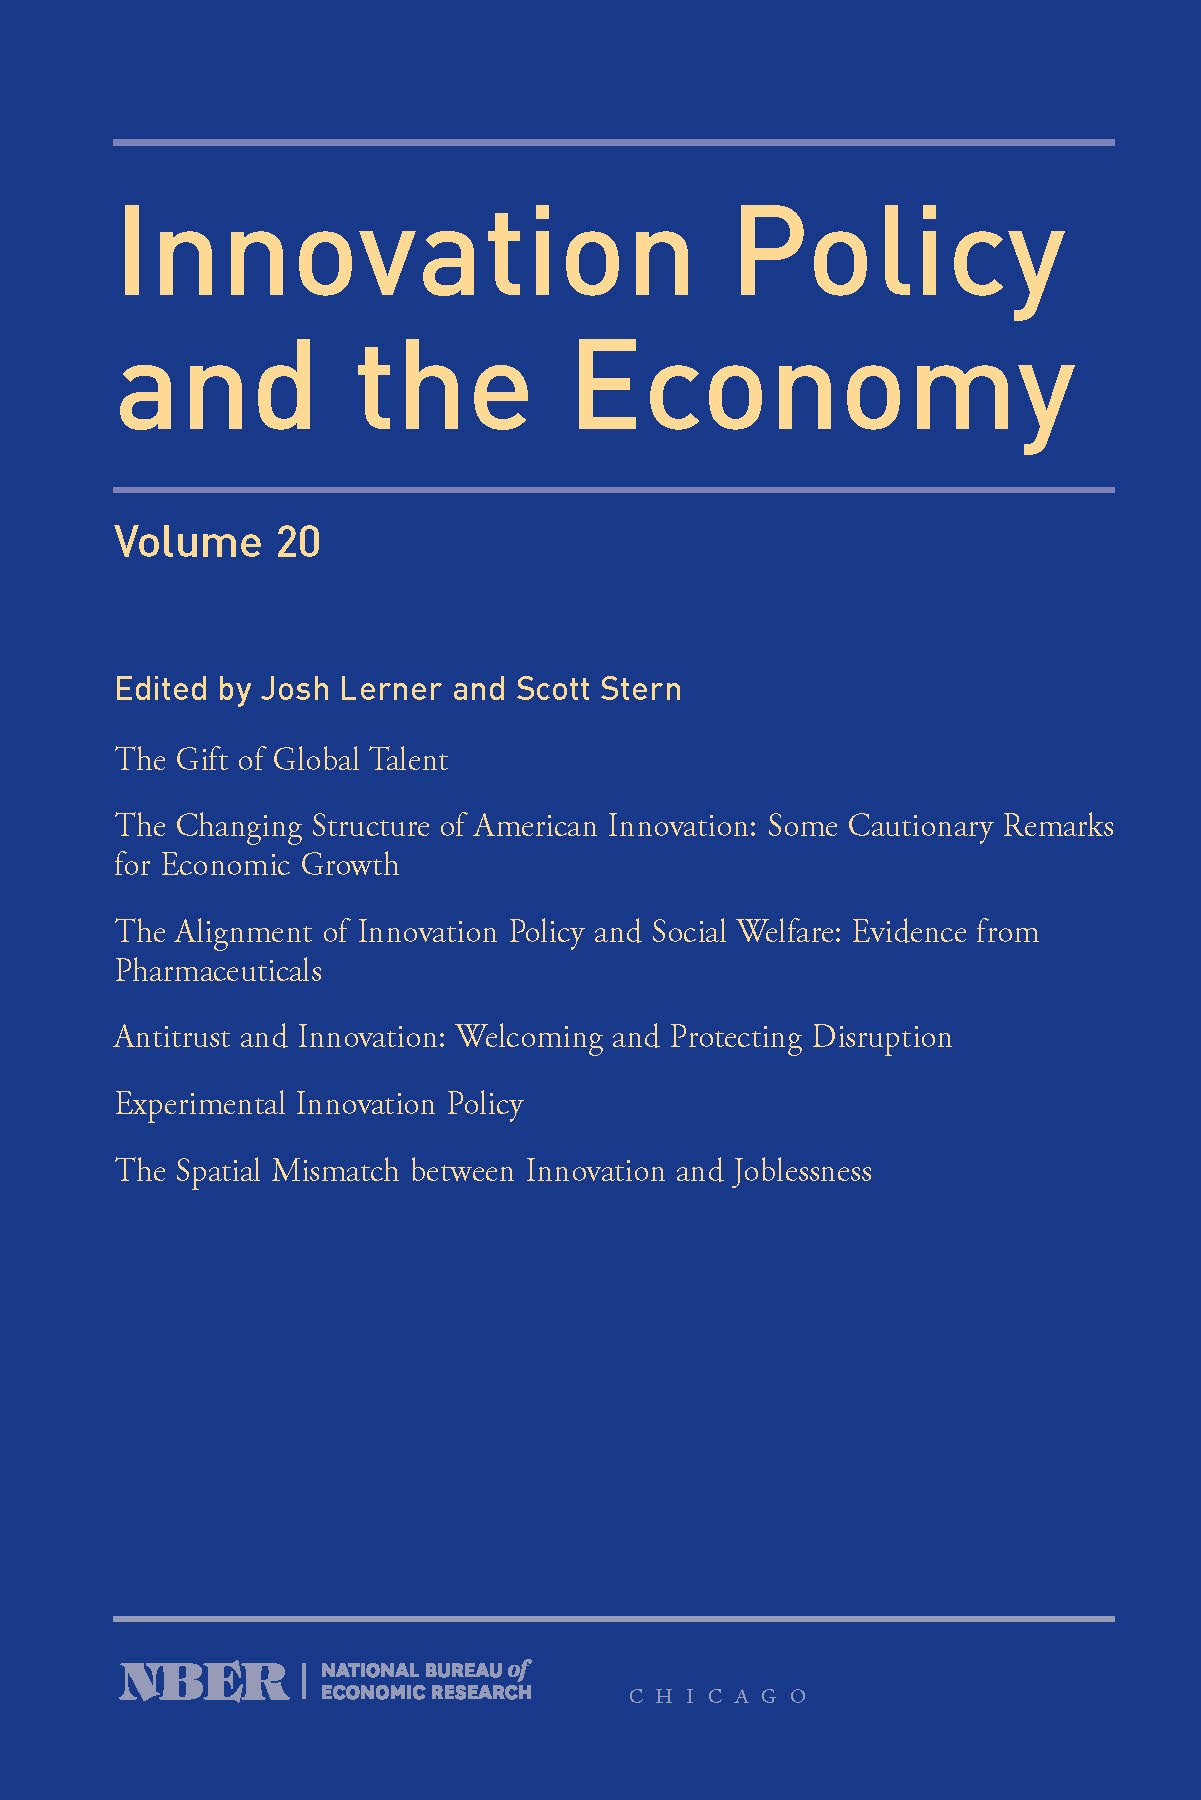 Innovation Policy and the Economy, 2019